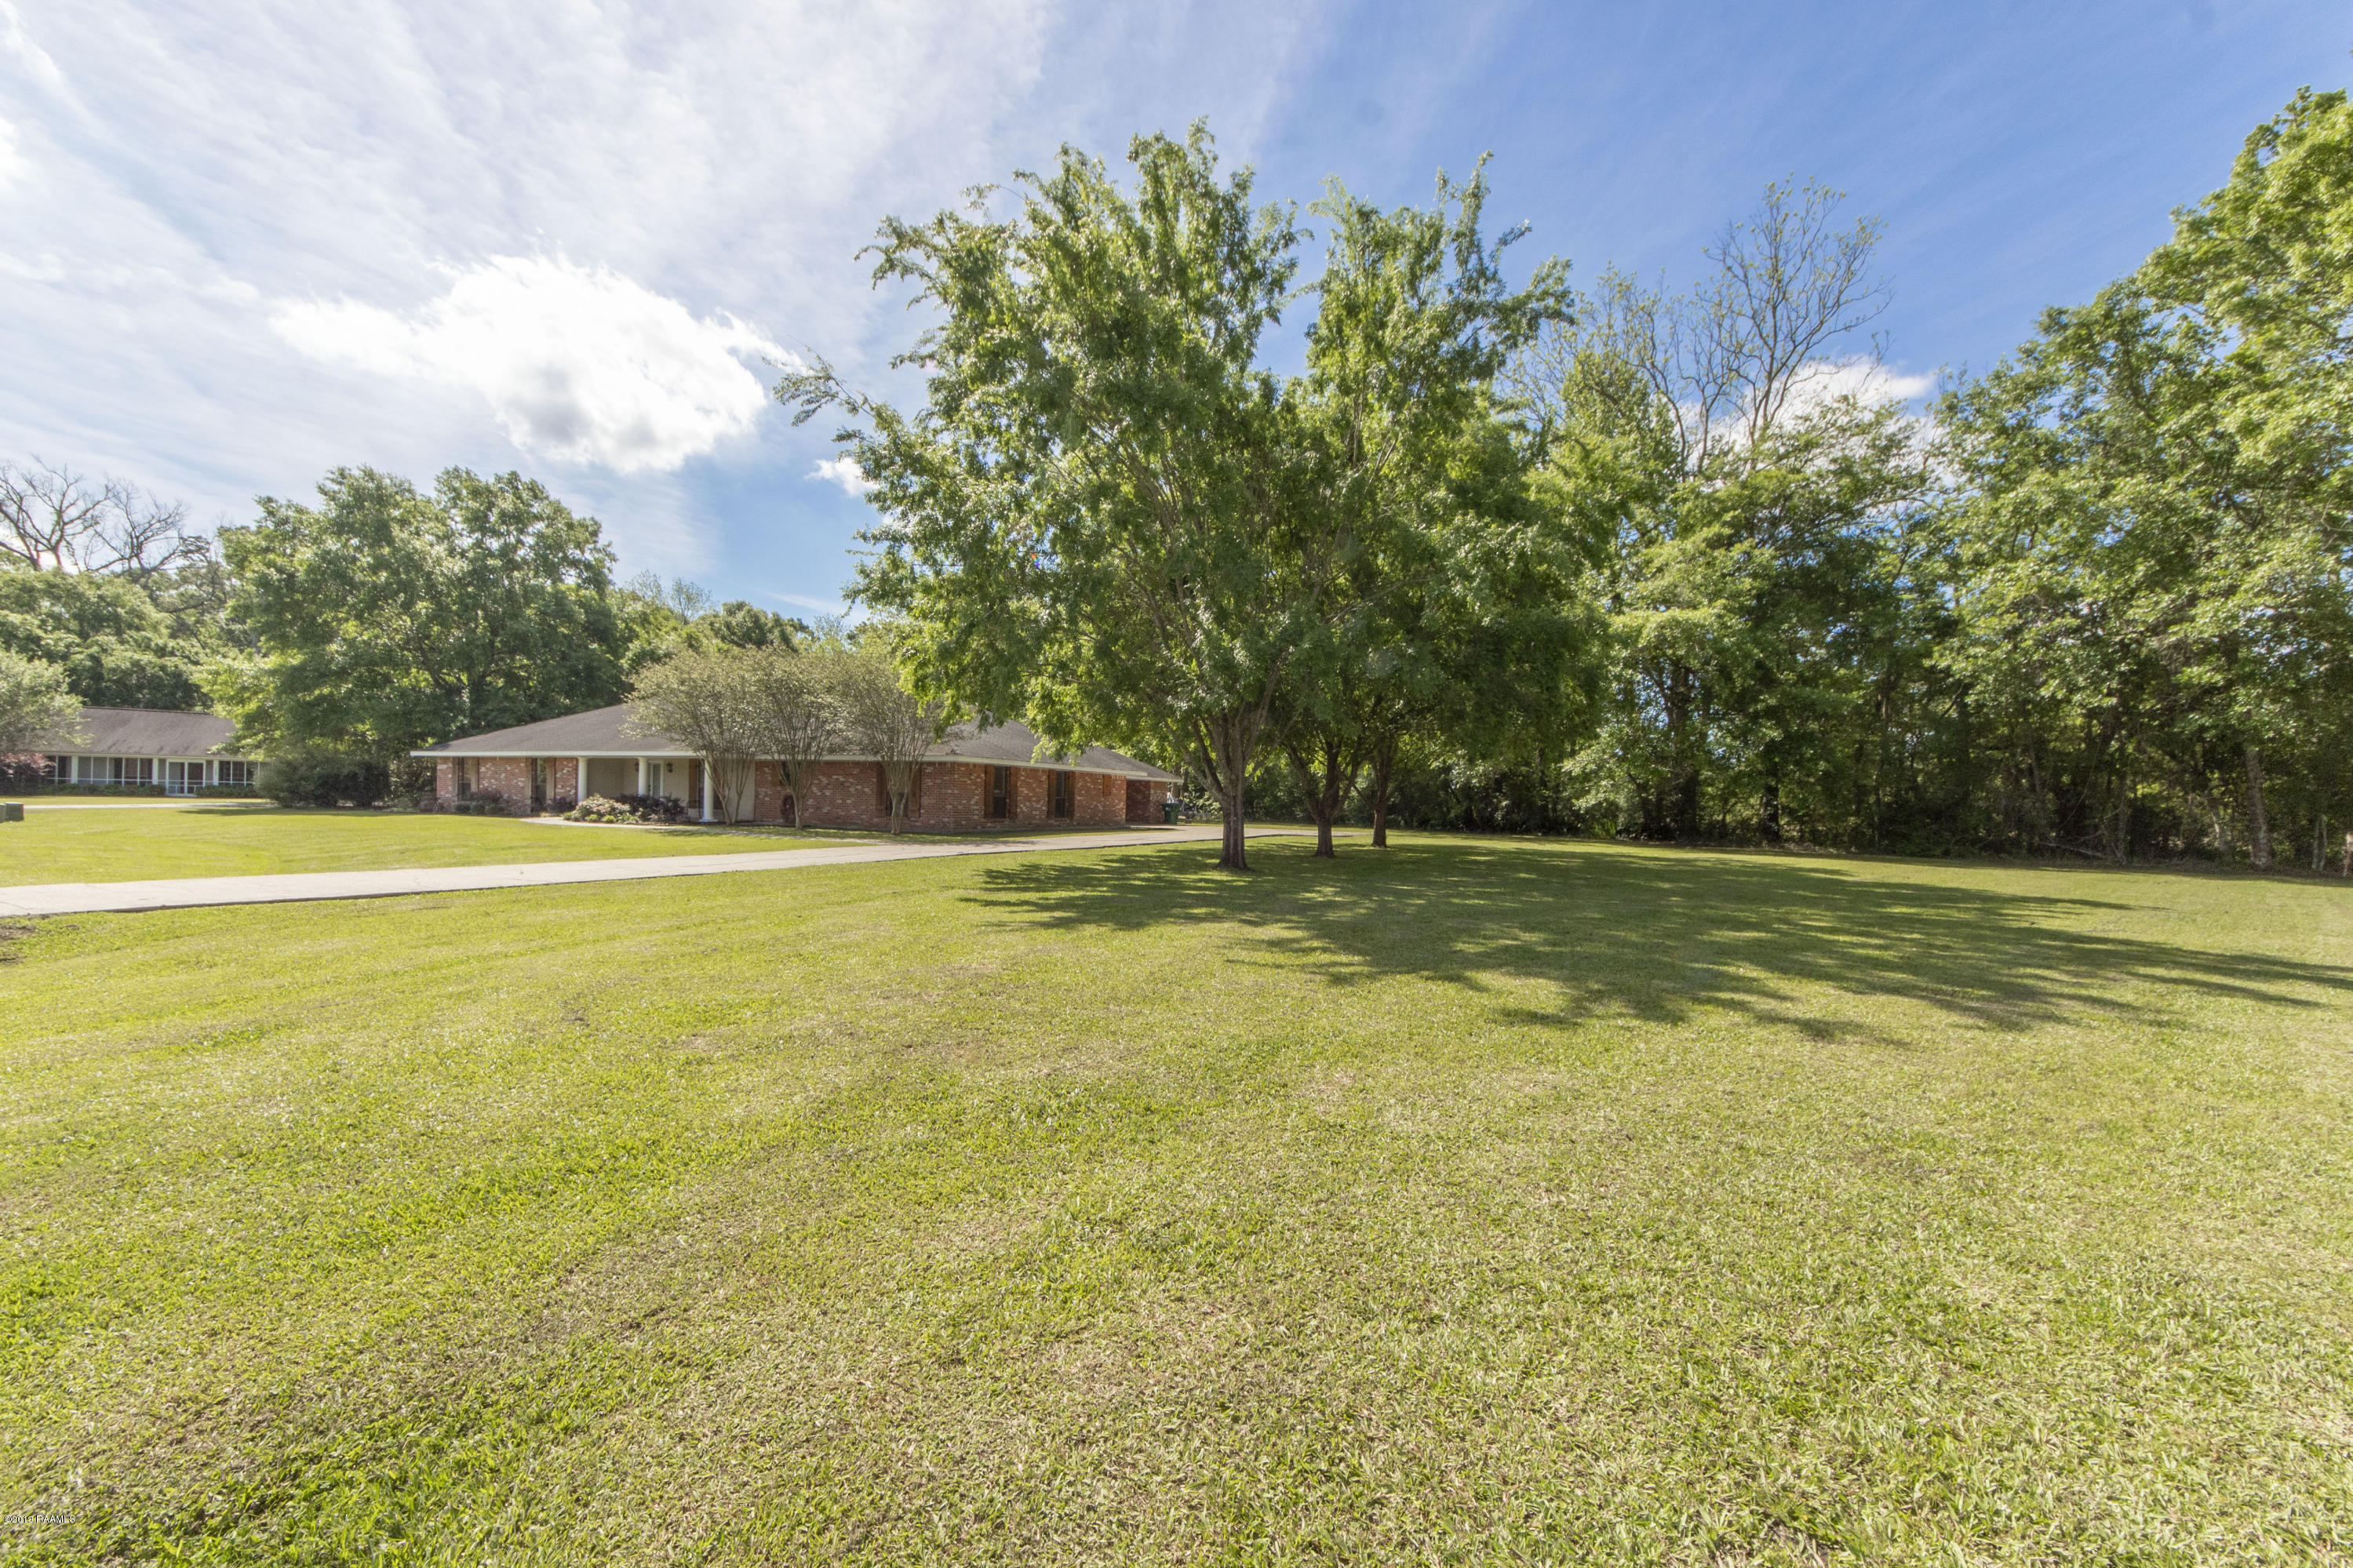 1056 Bonnie Lane, Breaux Bridge, LA 70517 Photo #7